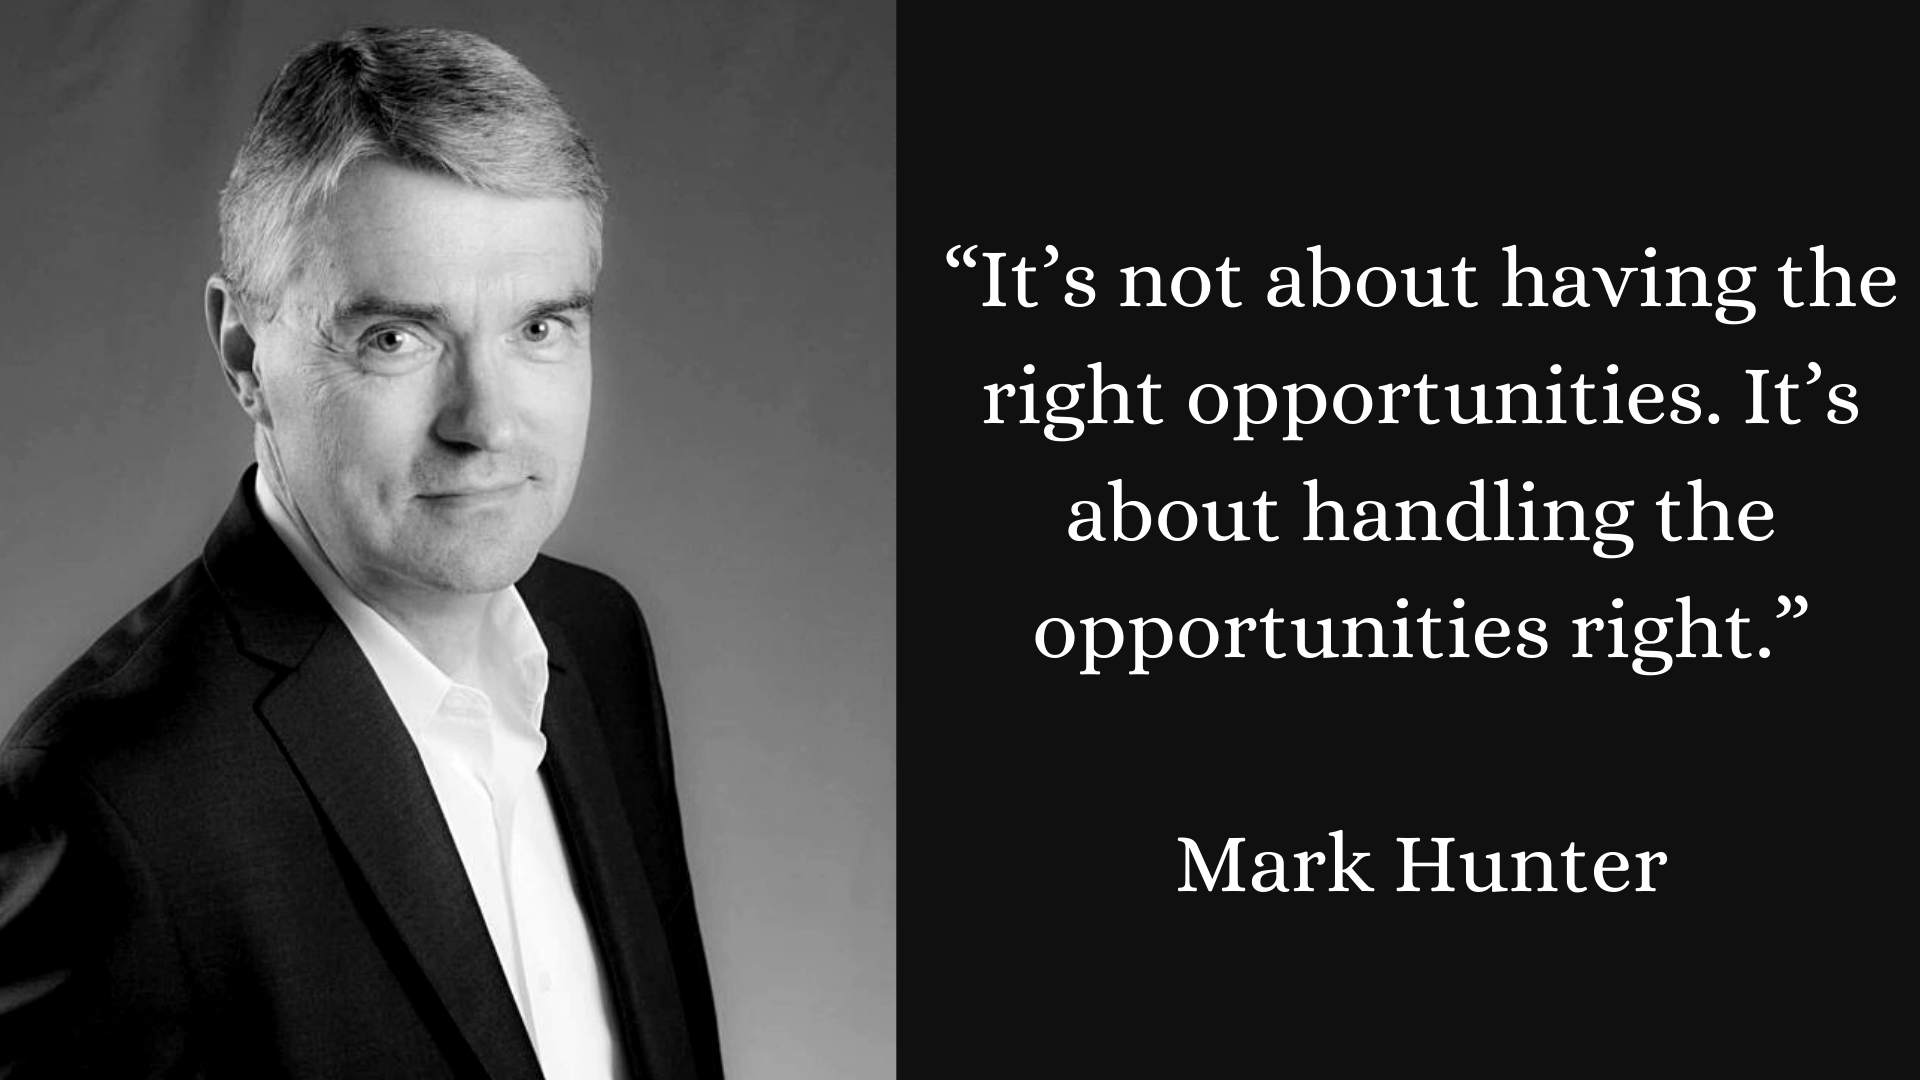 Quote by Mark Hunter